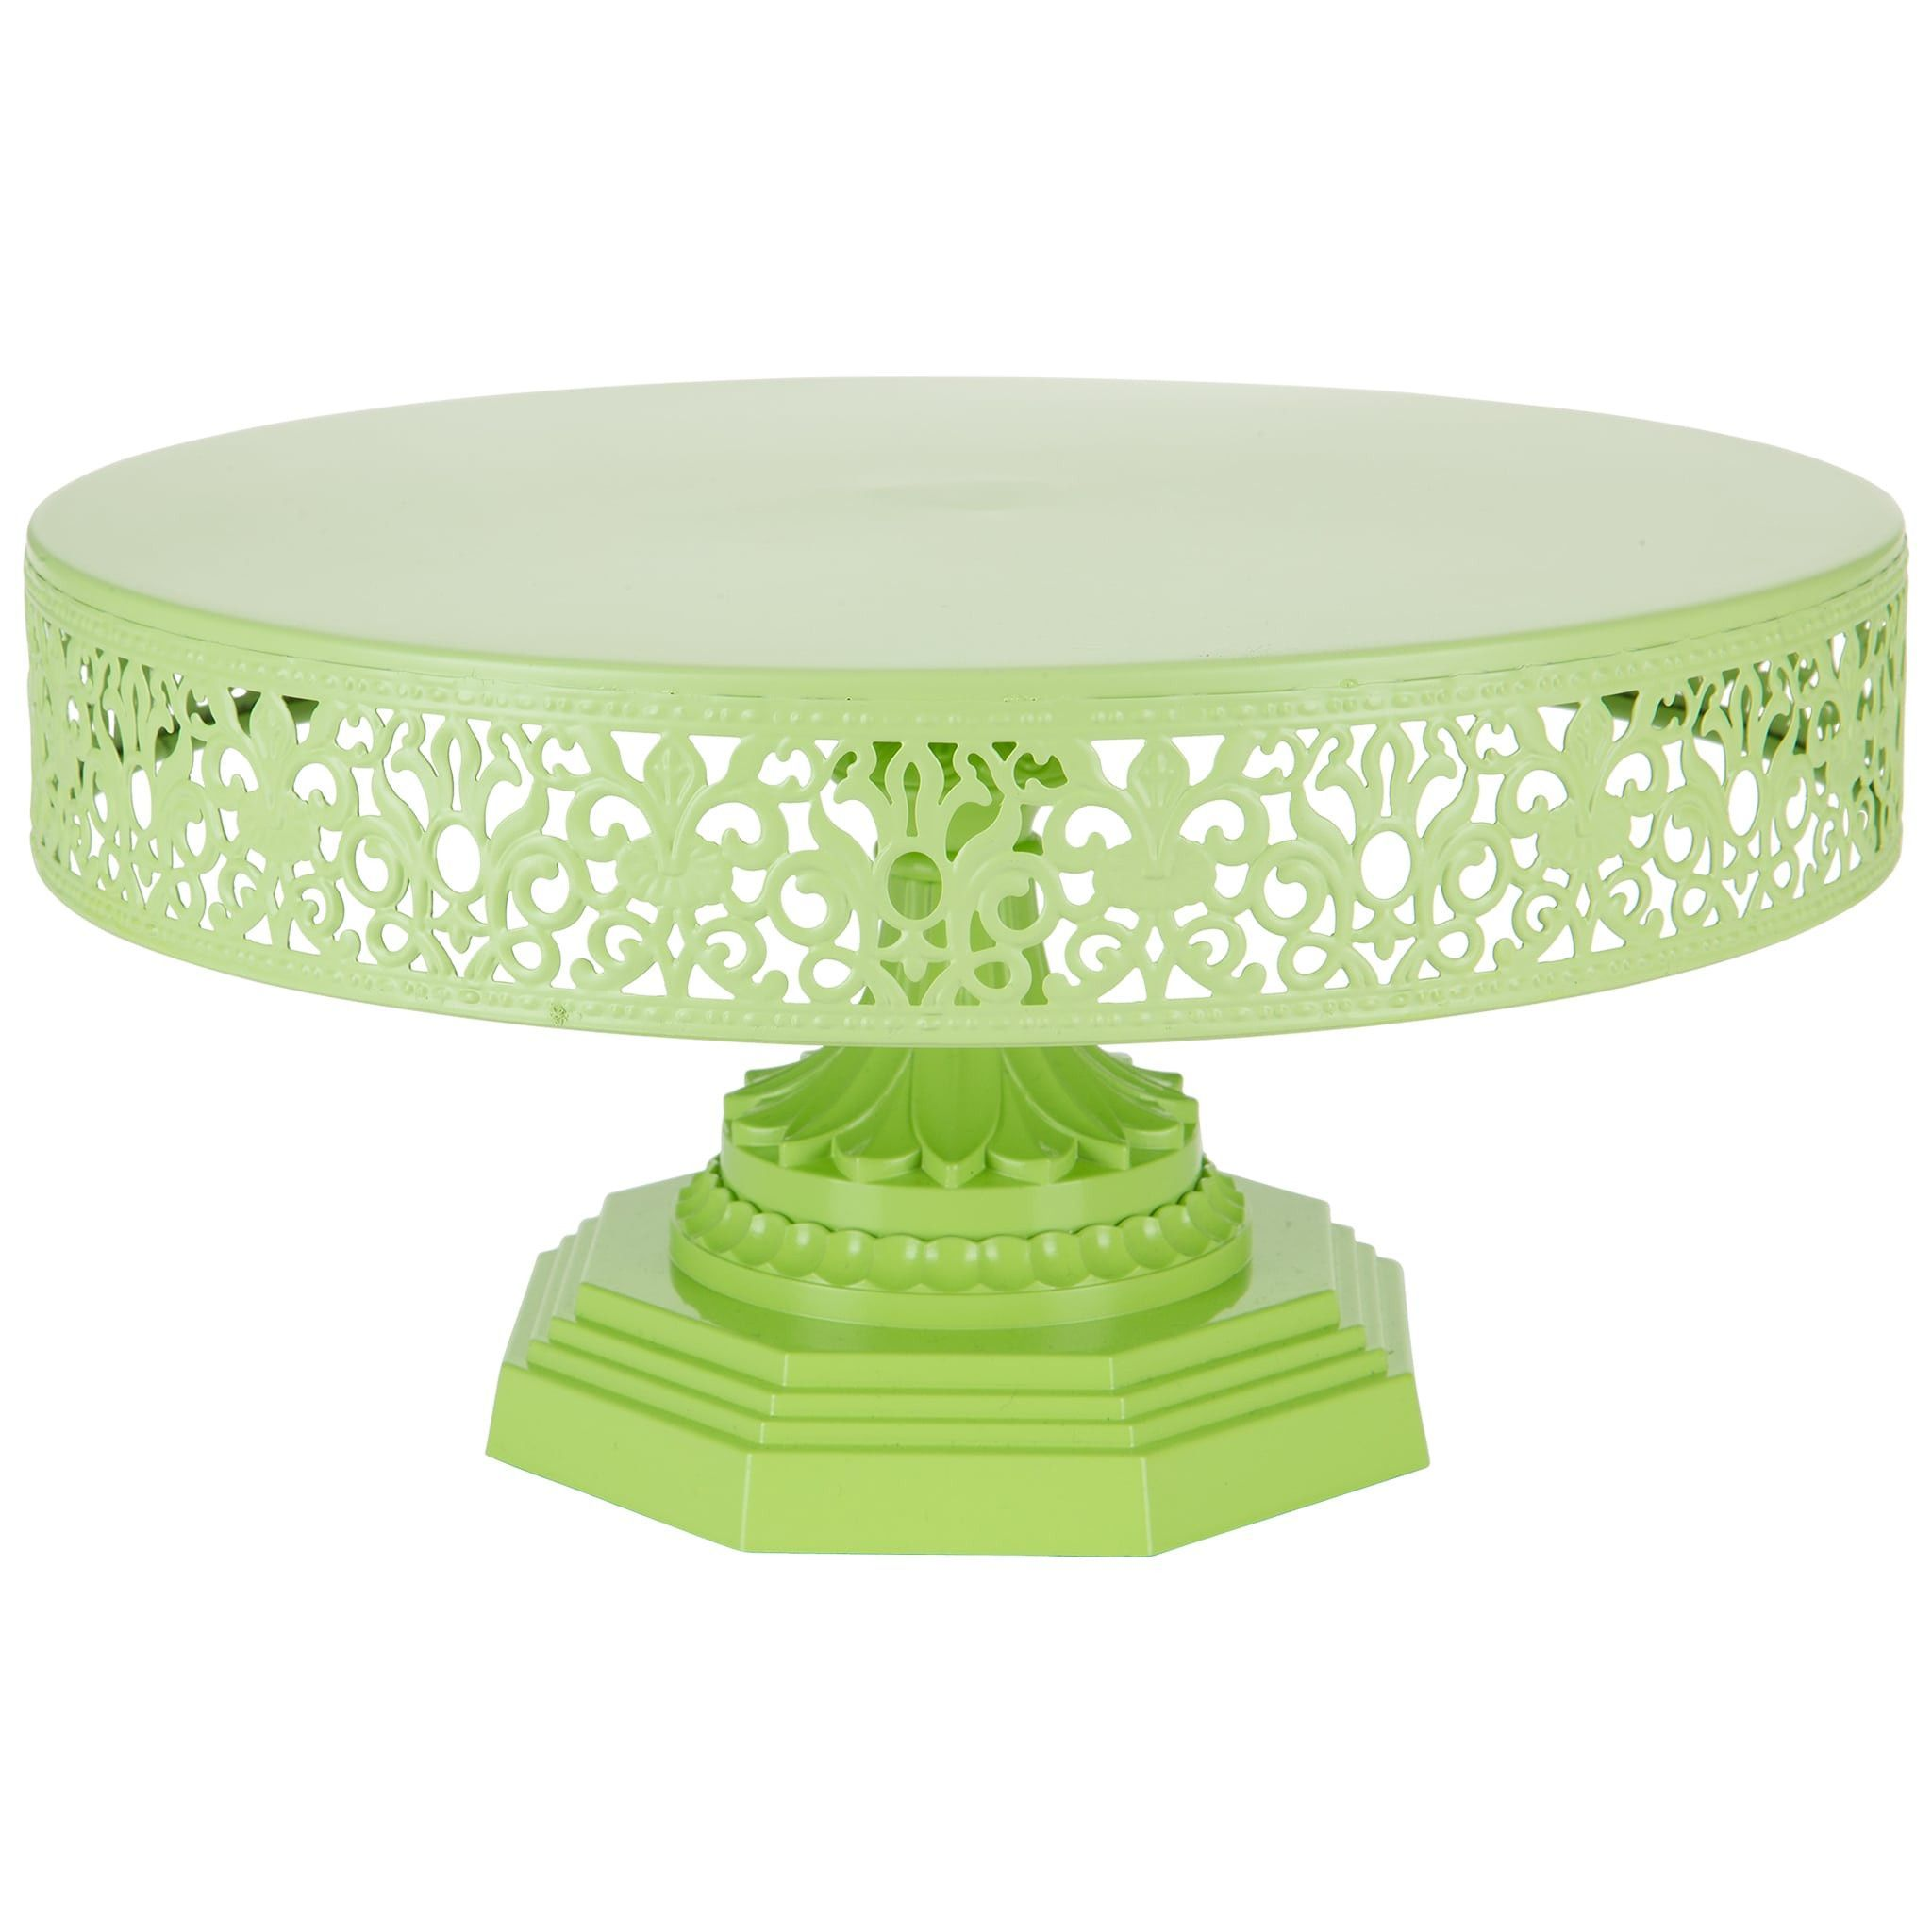 12 Metal Wedding Cake Stand Lime Green Isabelle Collection Metal Wedding Cake Stands Metal Cake Stand Green Cake Stand